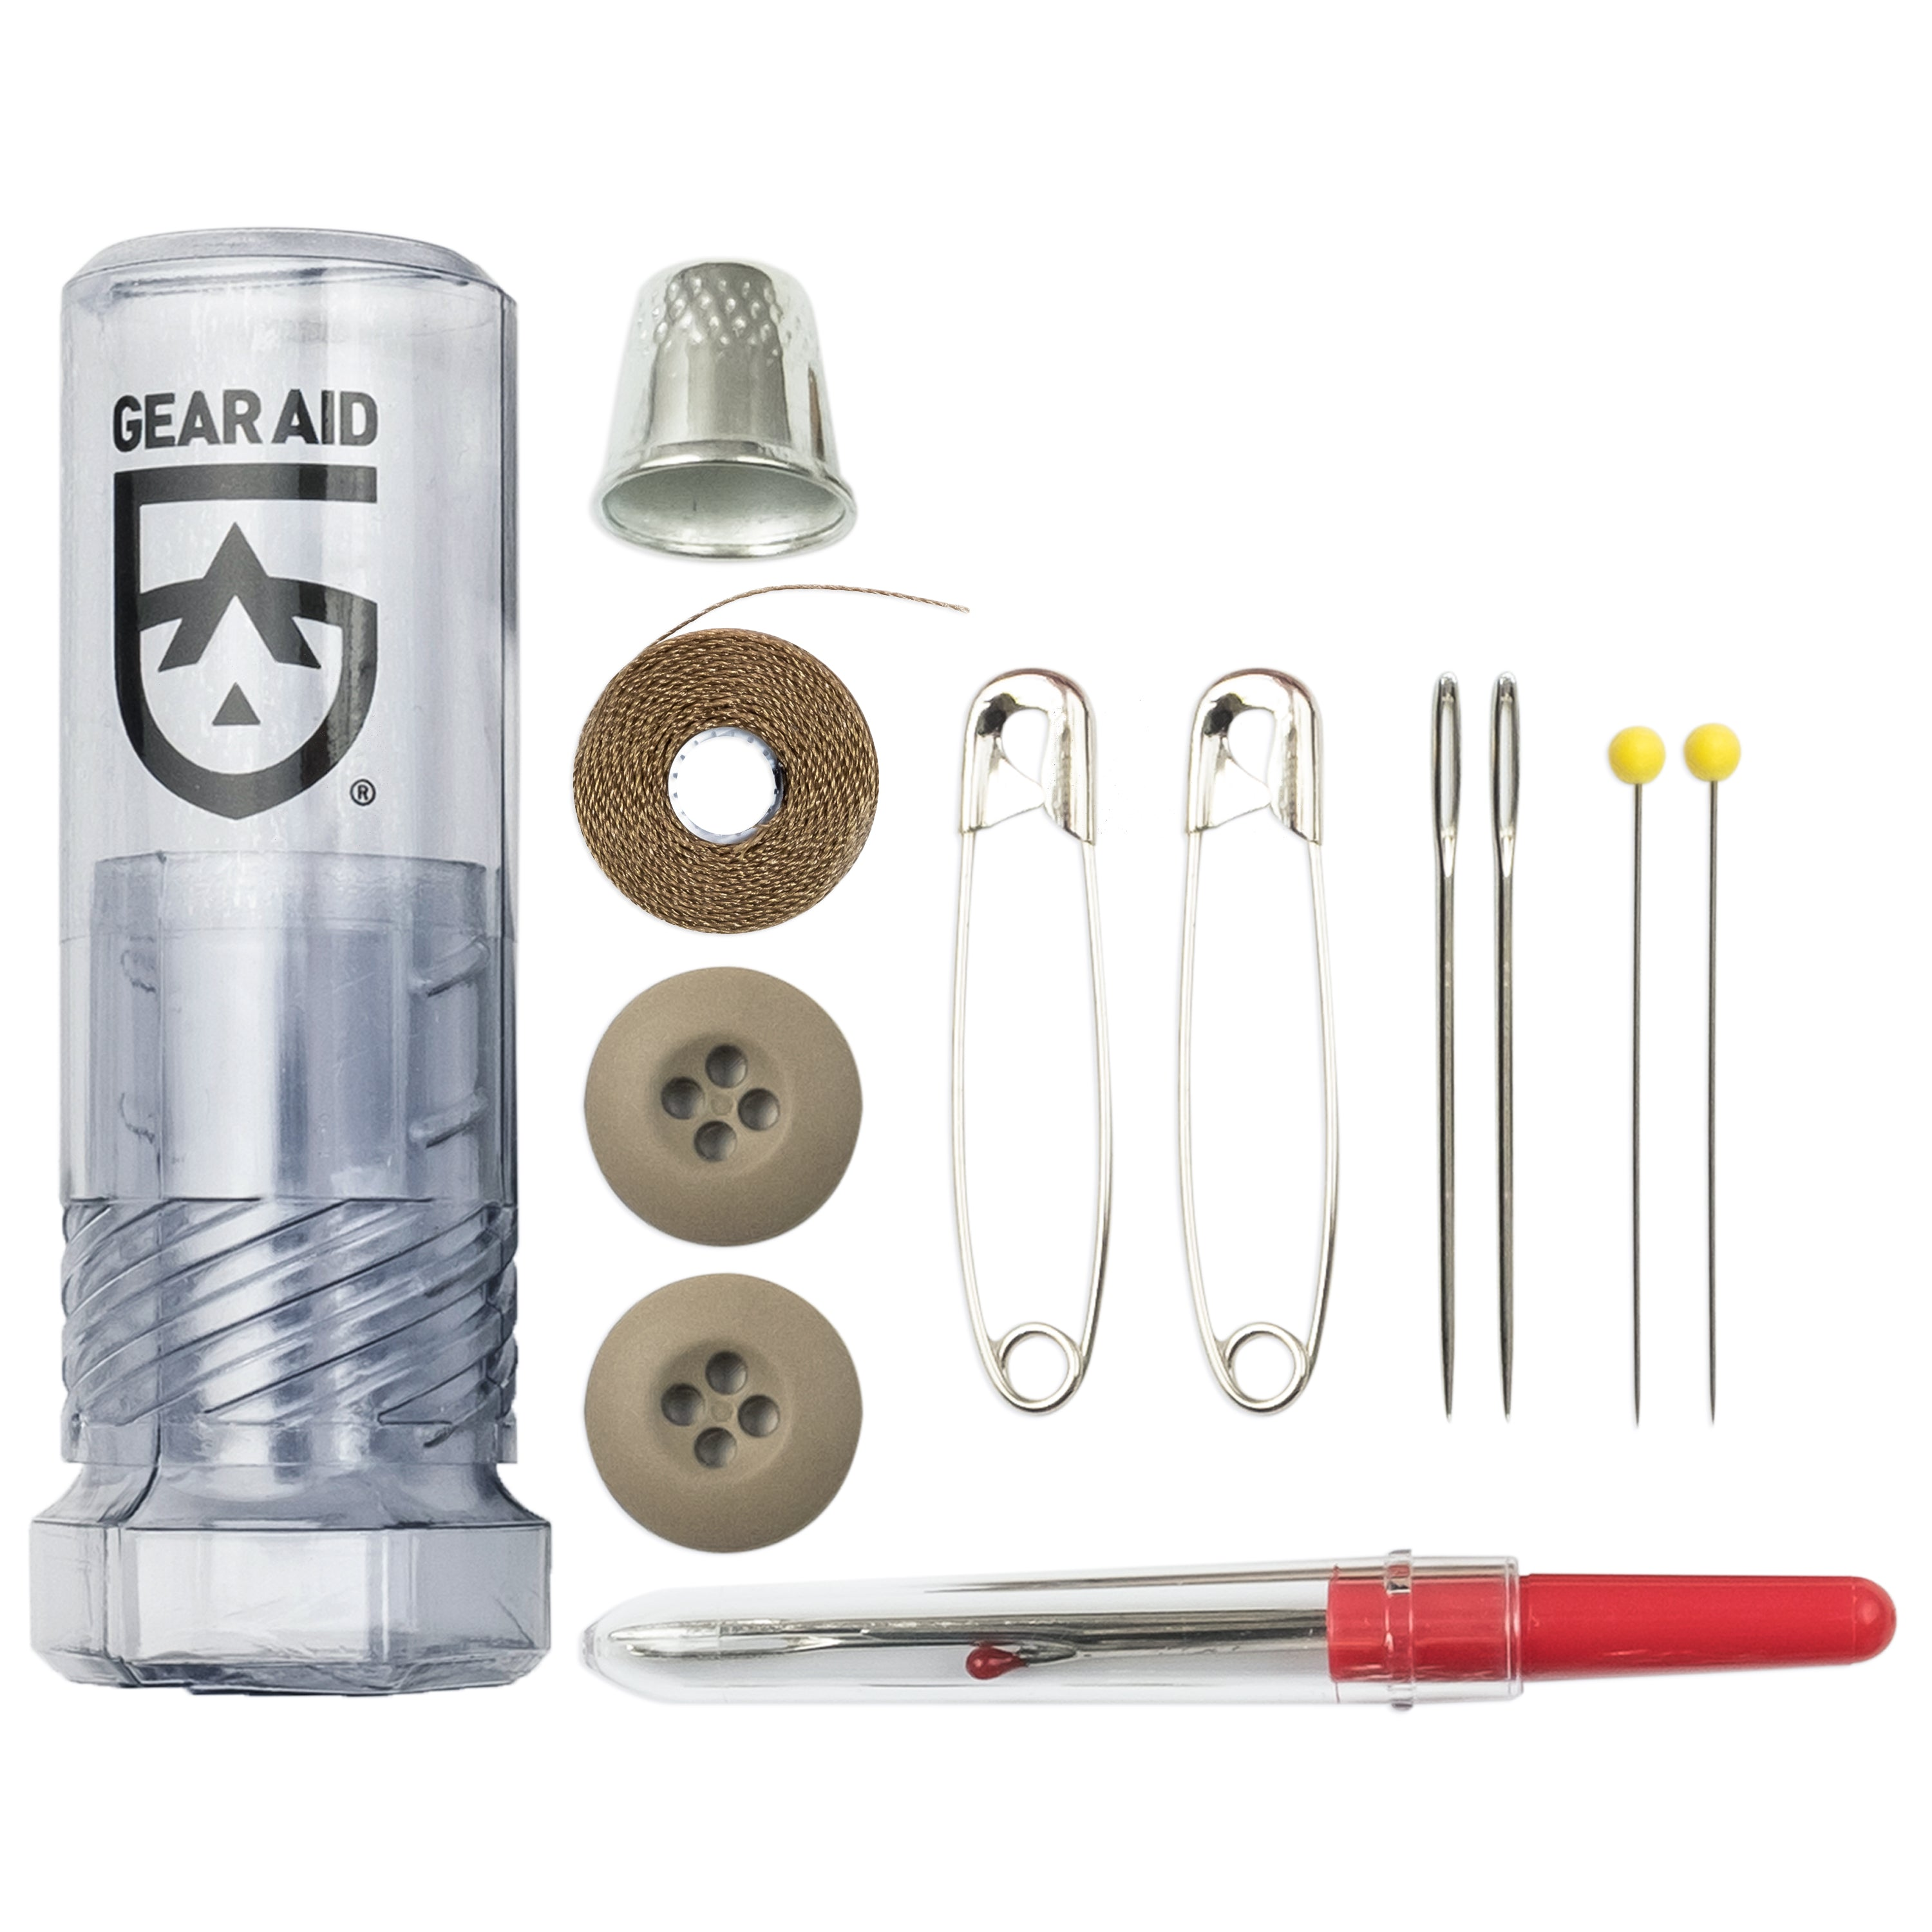 Gear Aid Tactical Sewing Kit